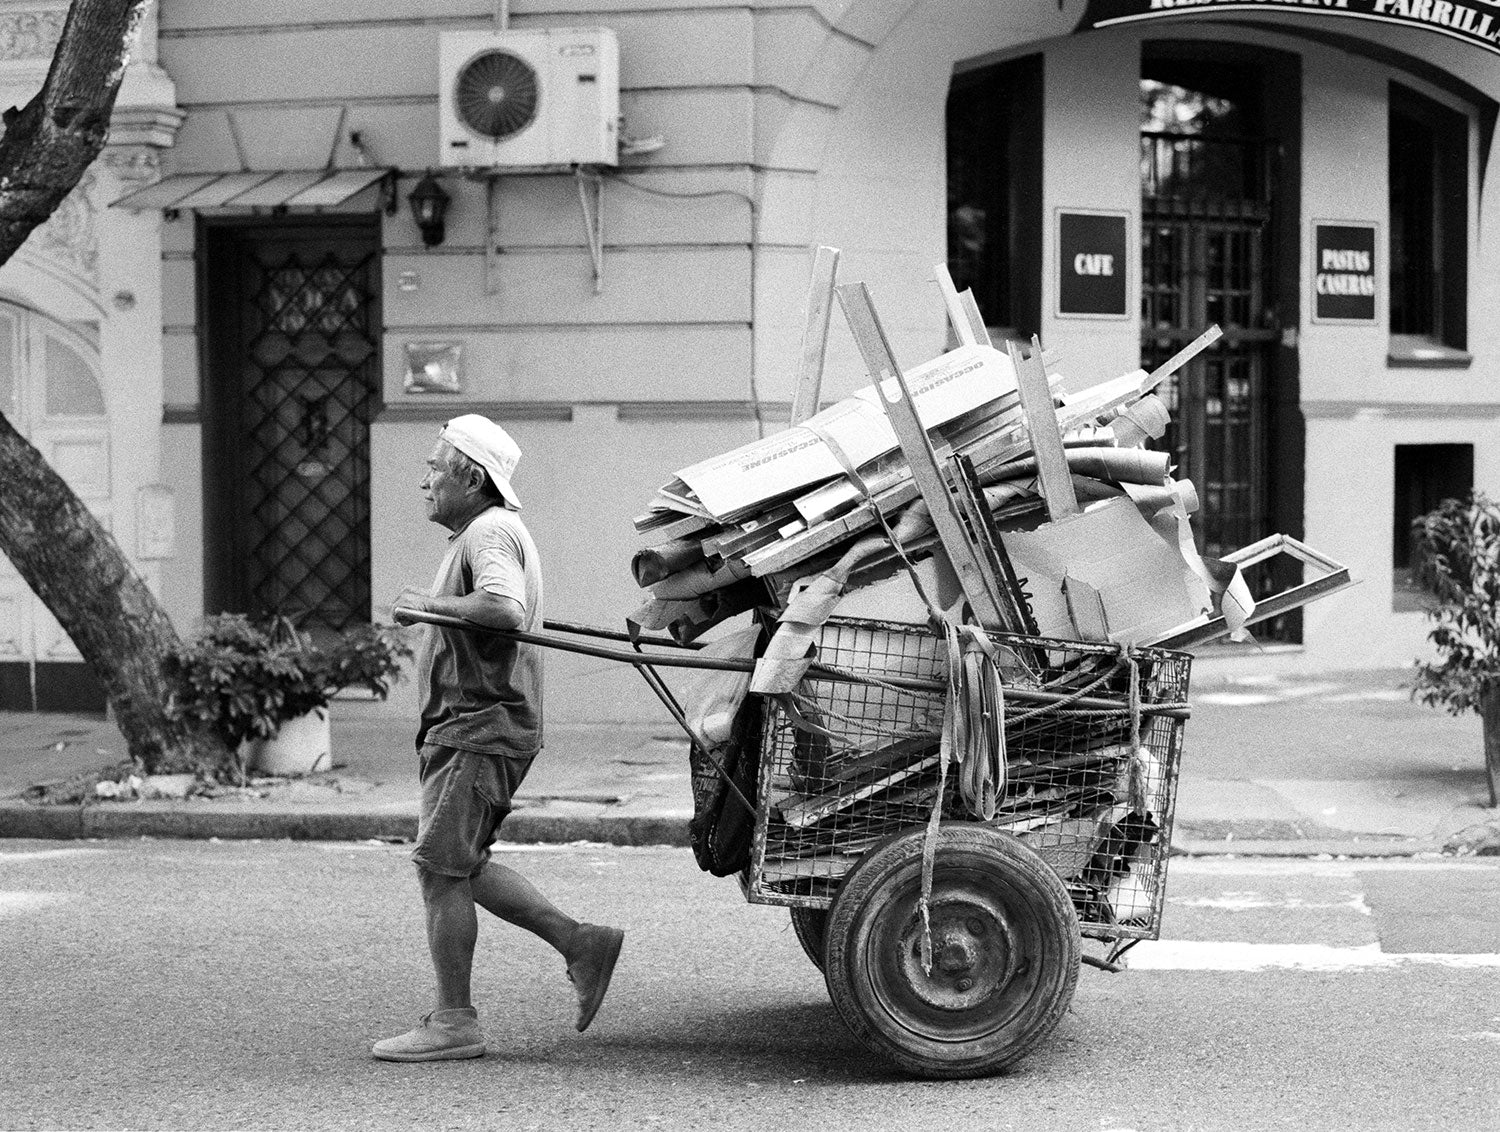 Recycle Man, Buenos Aires Black and White